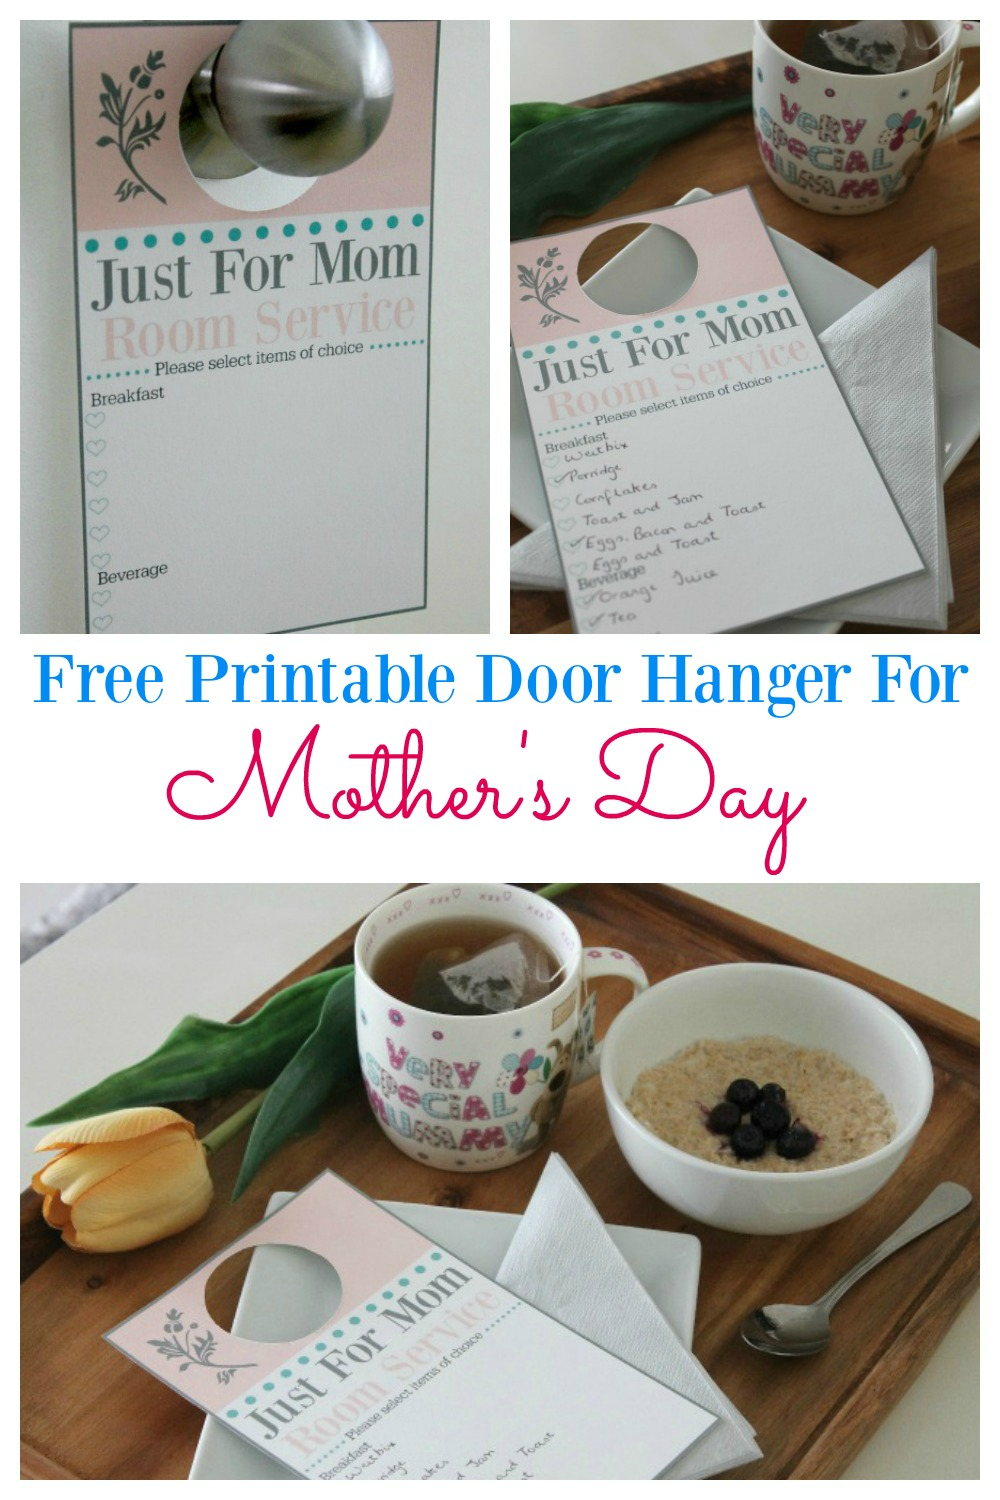 Download a free printable door hanger so you can provide room service to mom on Mother's day. Allow mom to feel pampered by bringing the luxury of staying in a hotel to her own bedroom. Kids will enjoy undertaking this easy gesture and preparing breakfast for mom in the morning. Forget expensive gifts, as this is all mom needs to feel special.